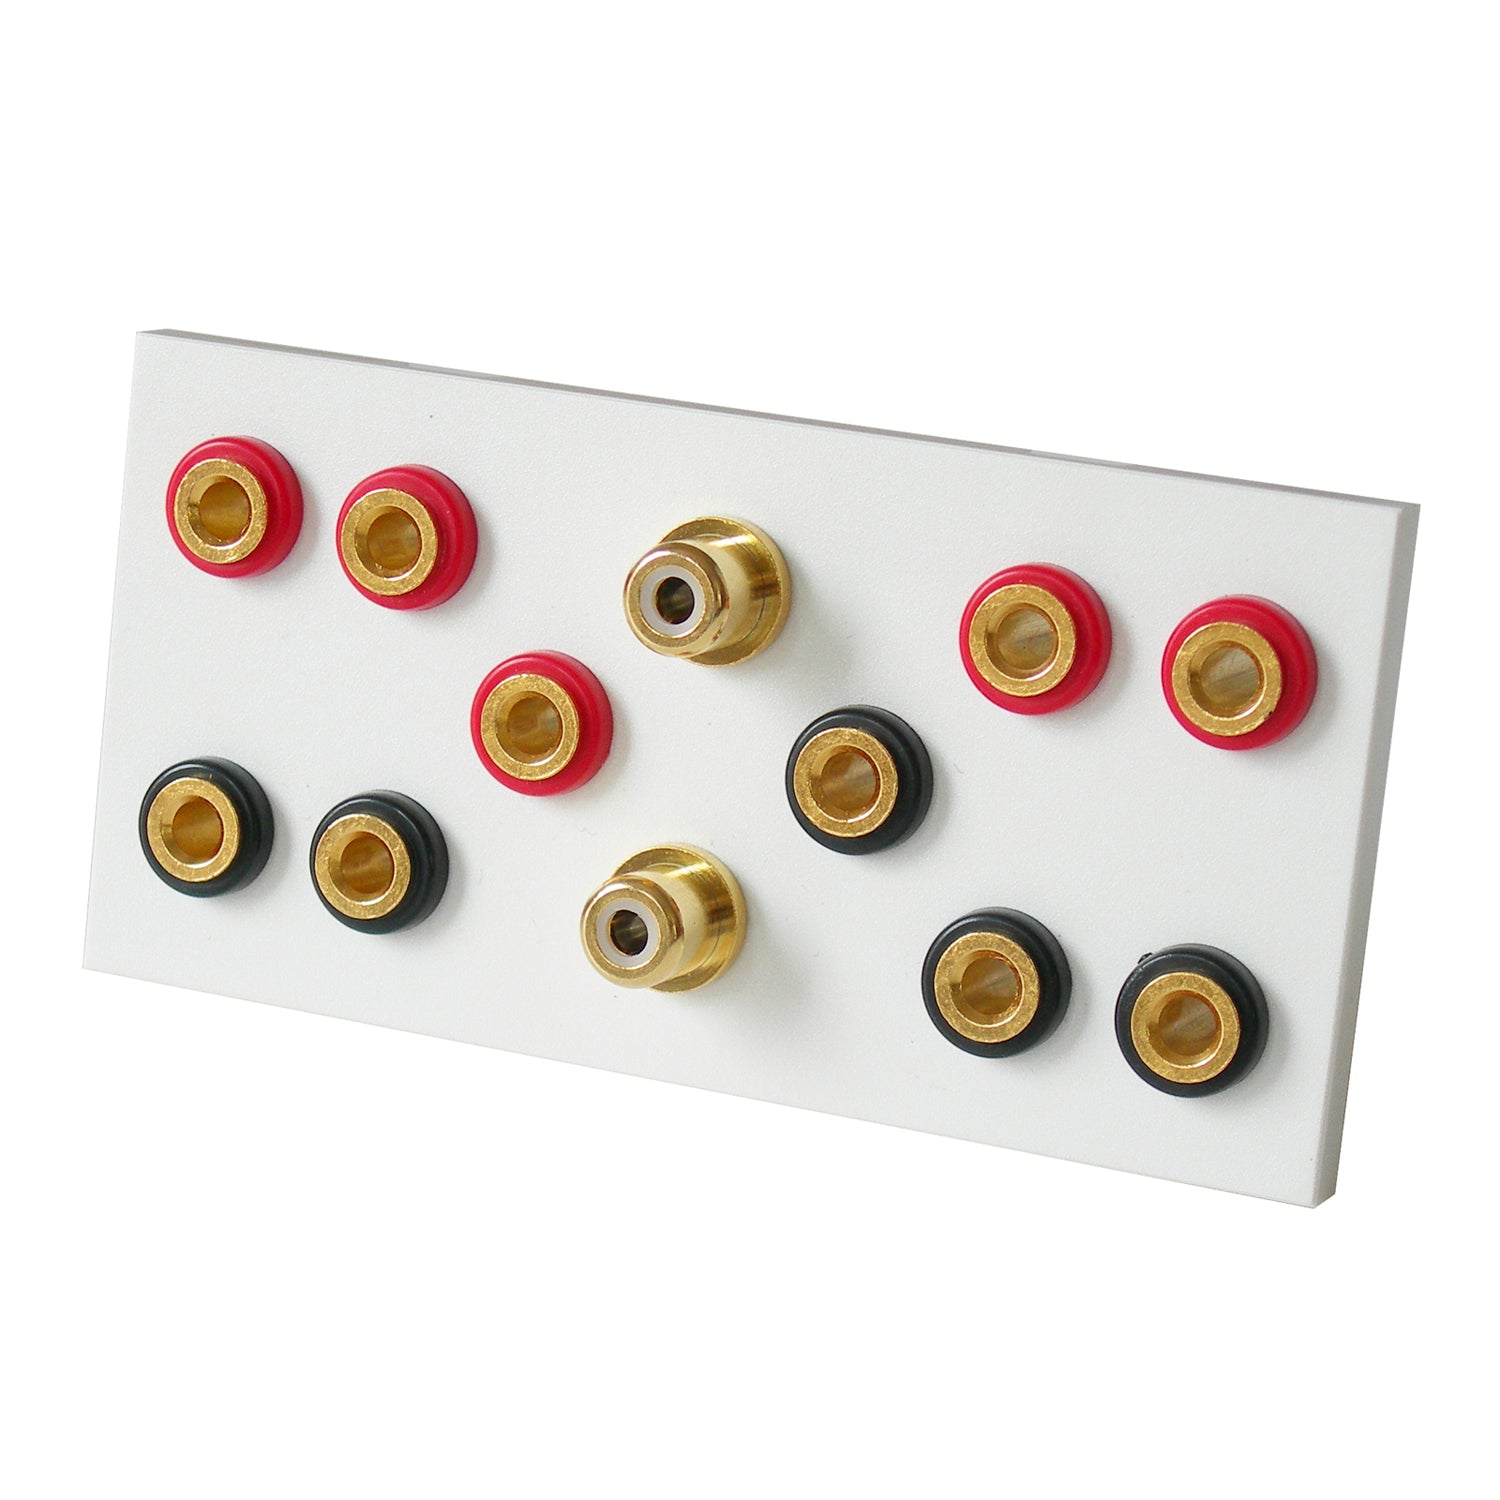 5.2 speaker module with flat terminals in white front